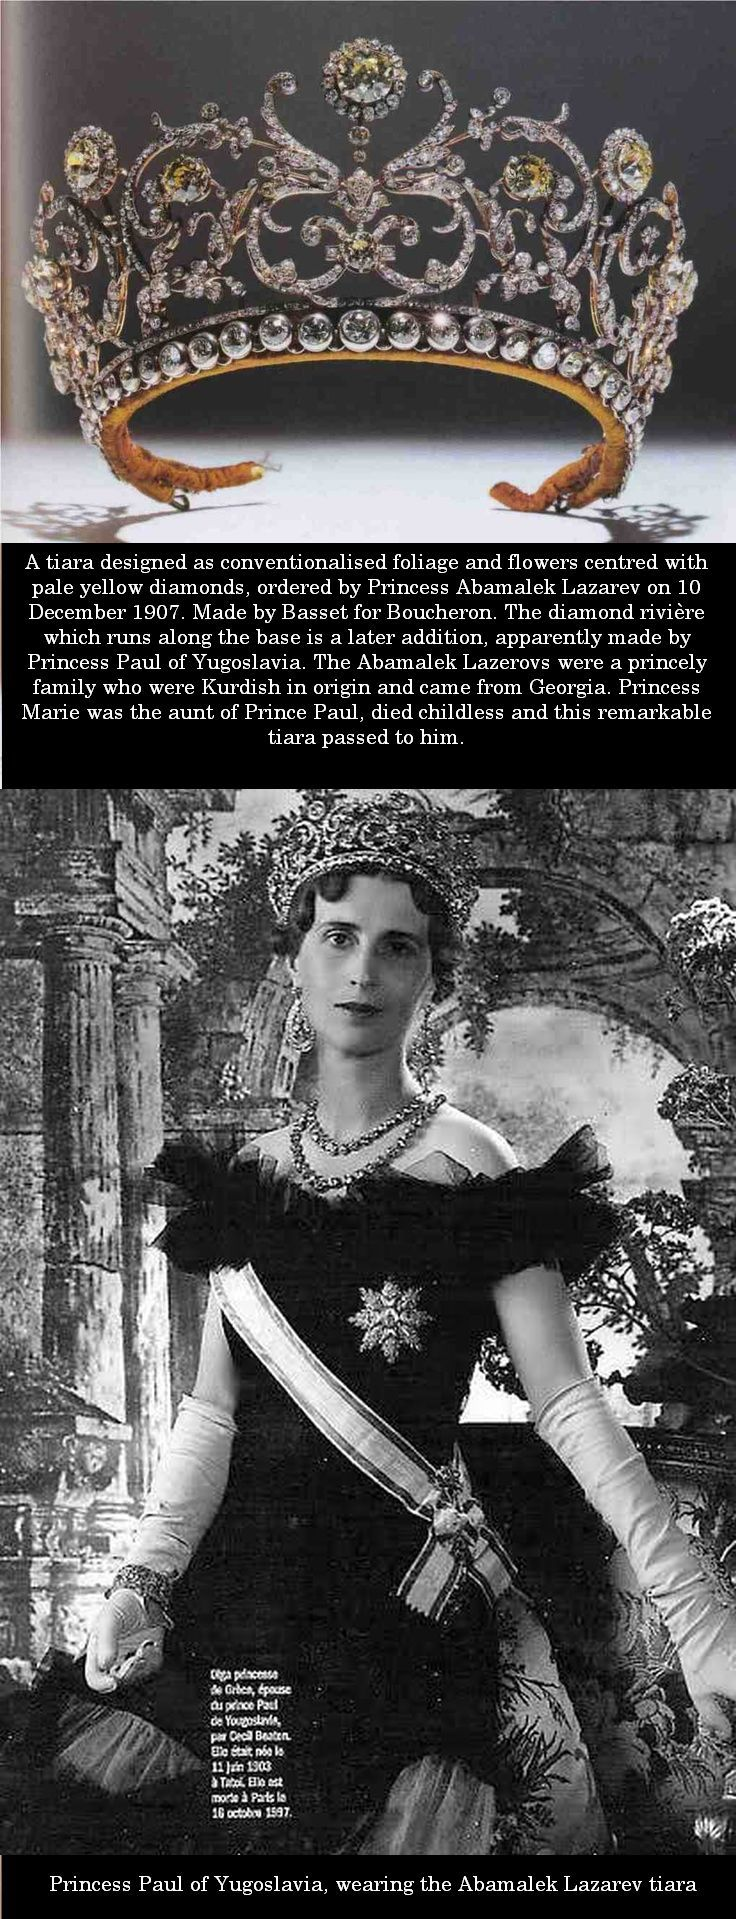 The Abamalek Lazarev tiara often wrongly attributed to Grand Duchess Vladimir